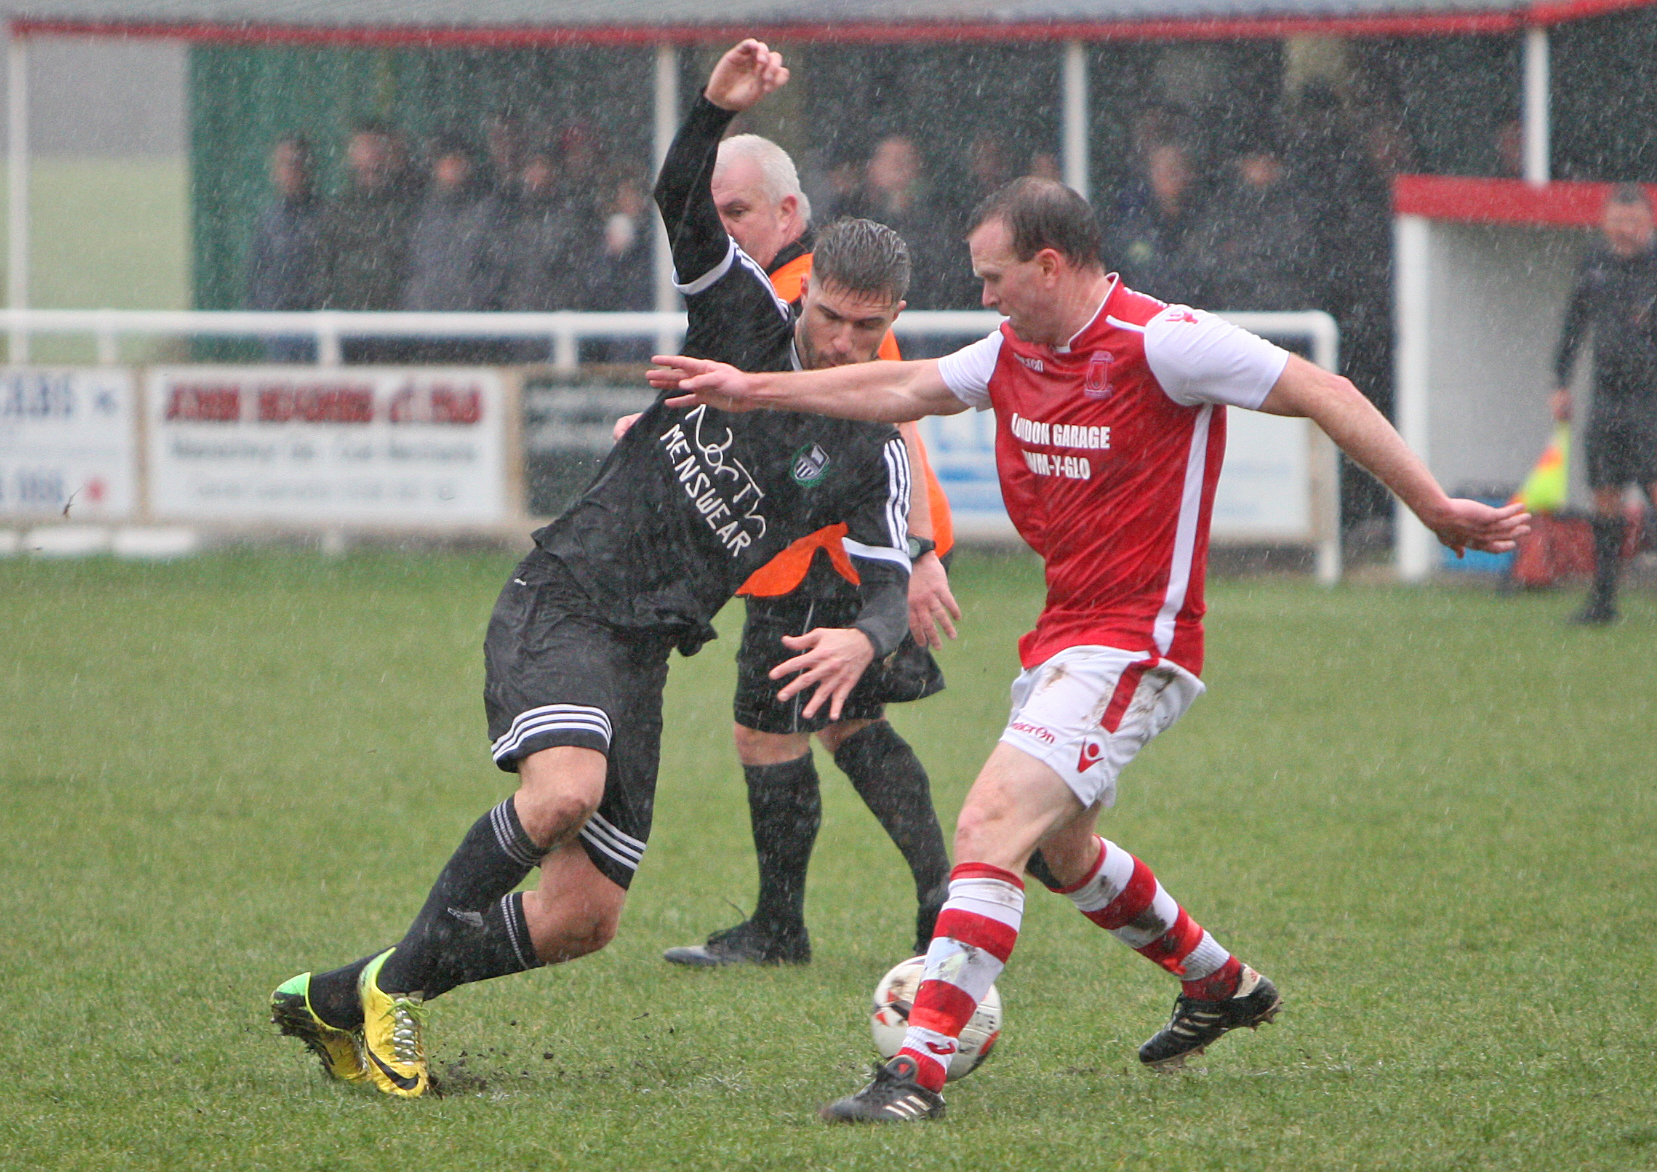 Peter Jones hit a hat-trick against Prestatyn Sports (Photo by Richard Birch)